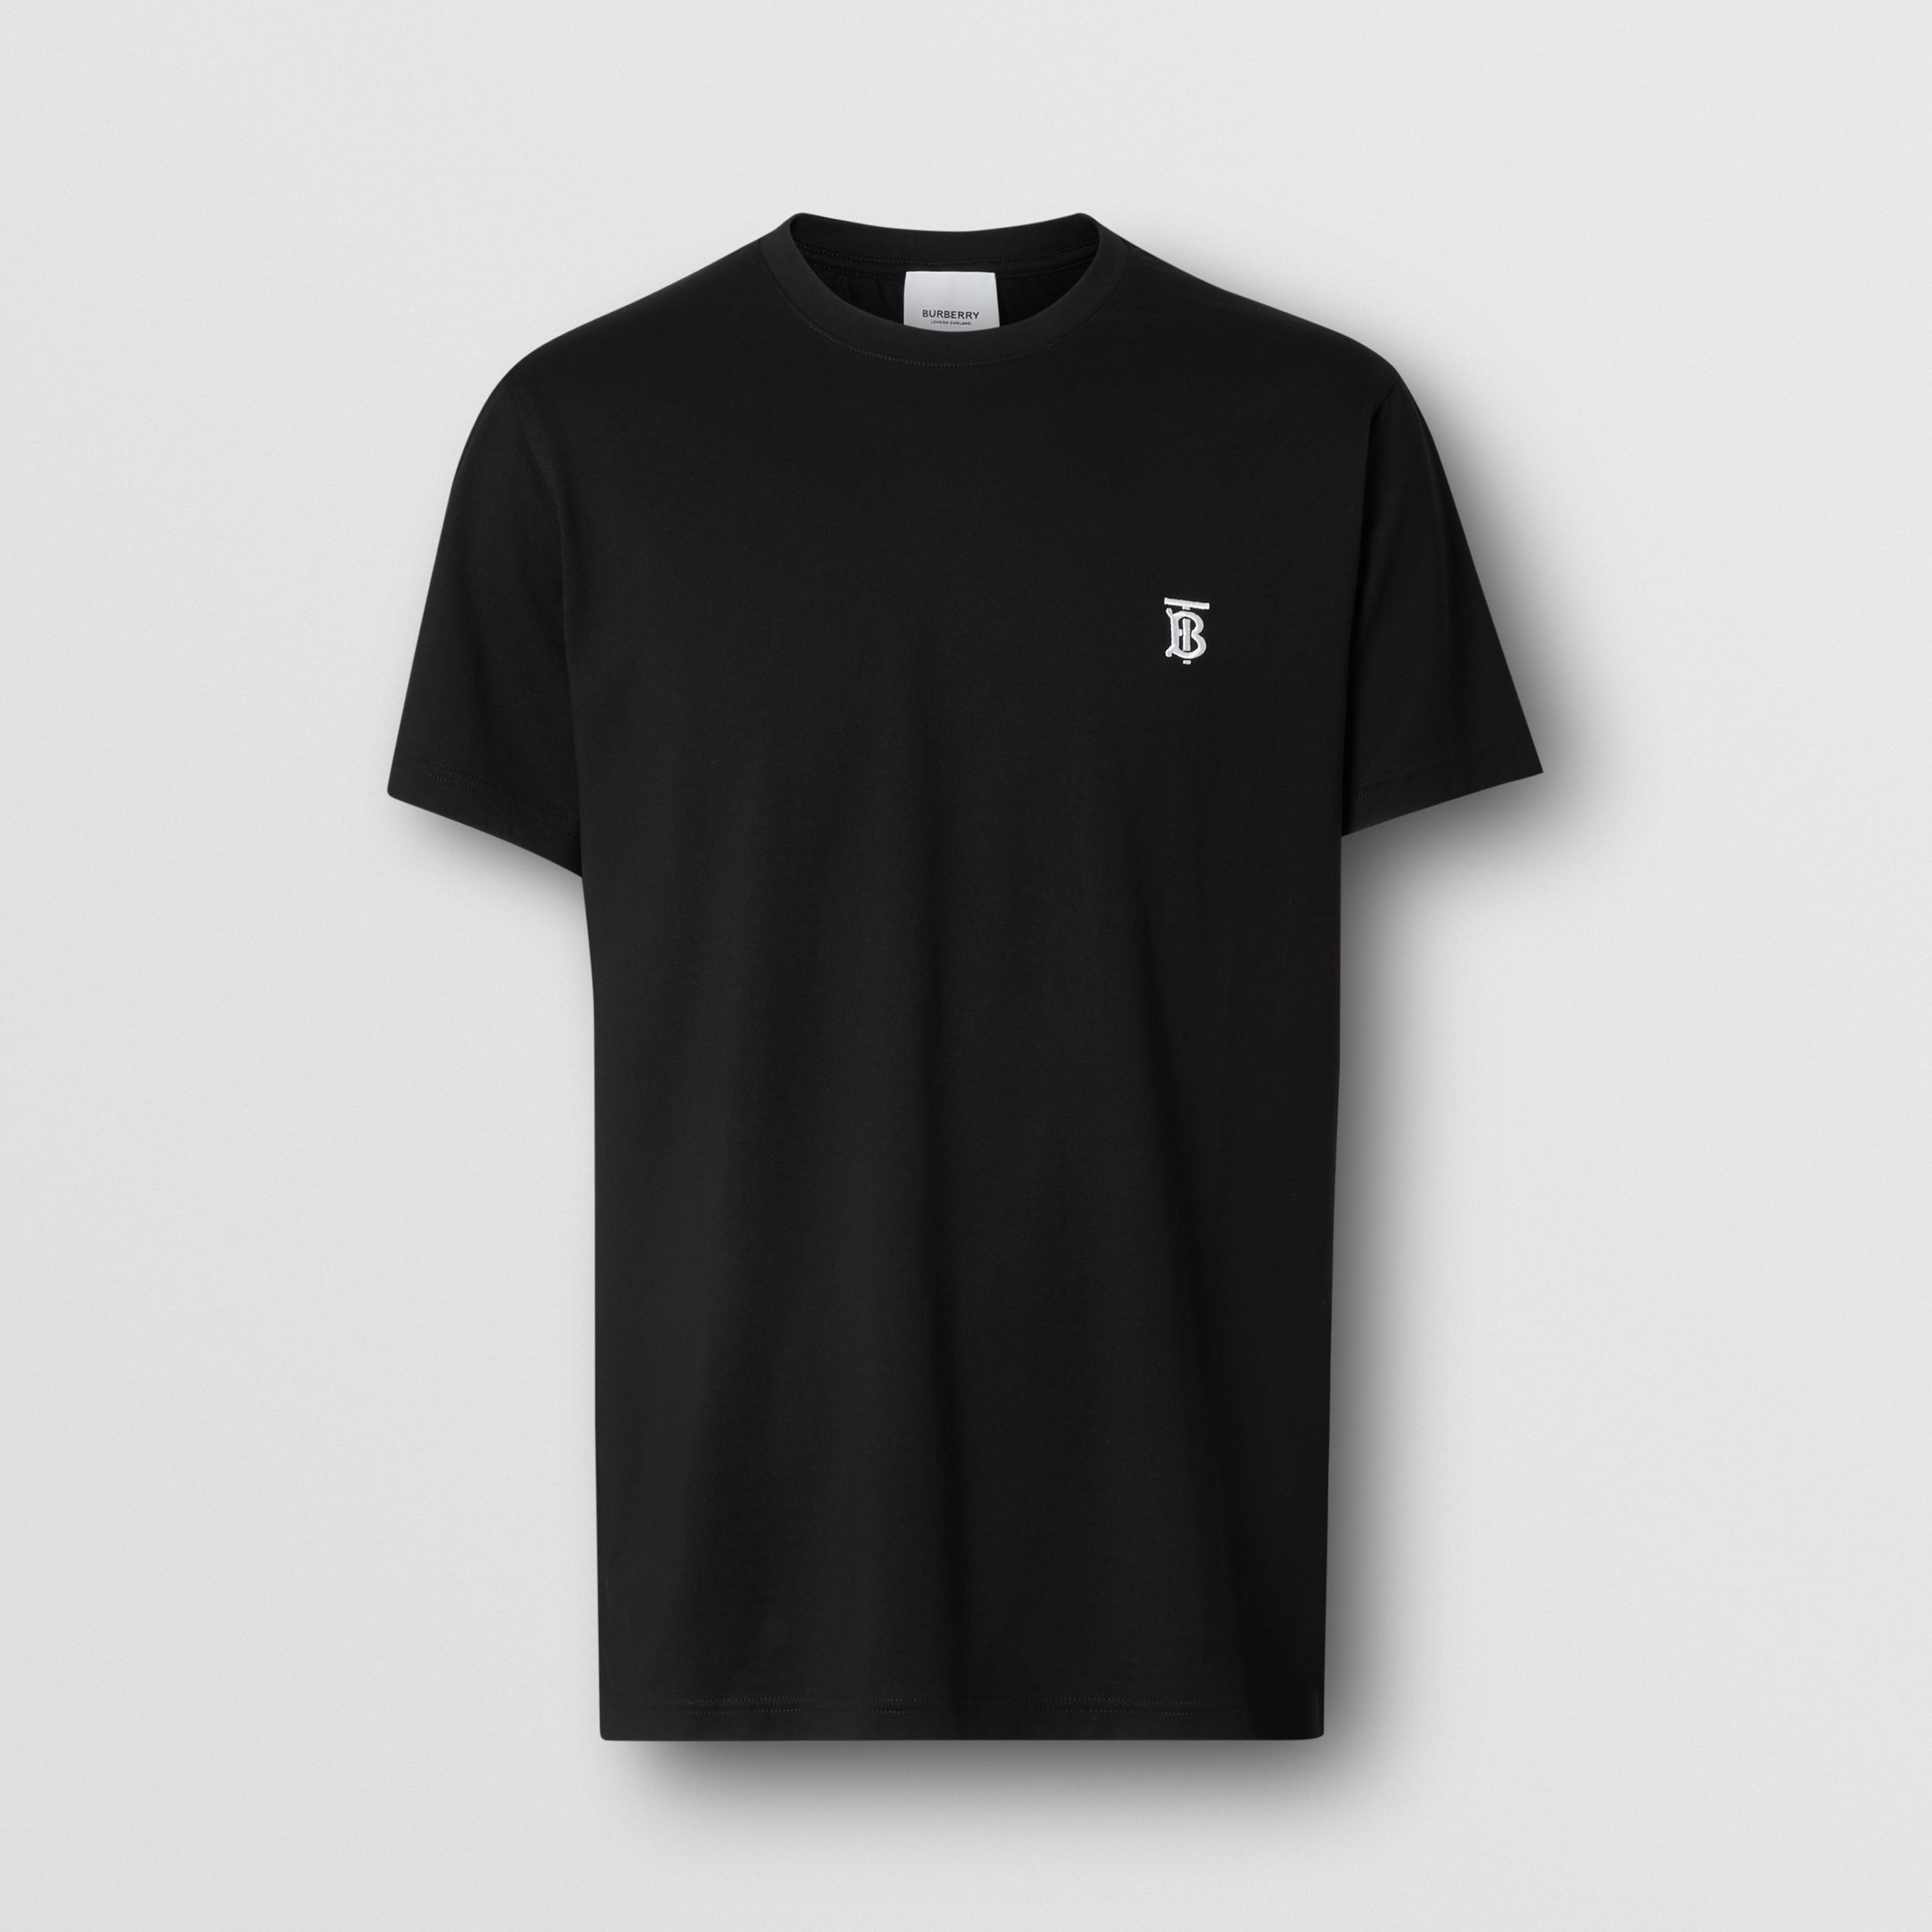 Monogram Motif Cotton T-shirt in Black - Men | Burberry - 4